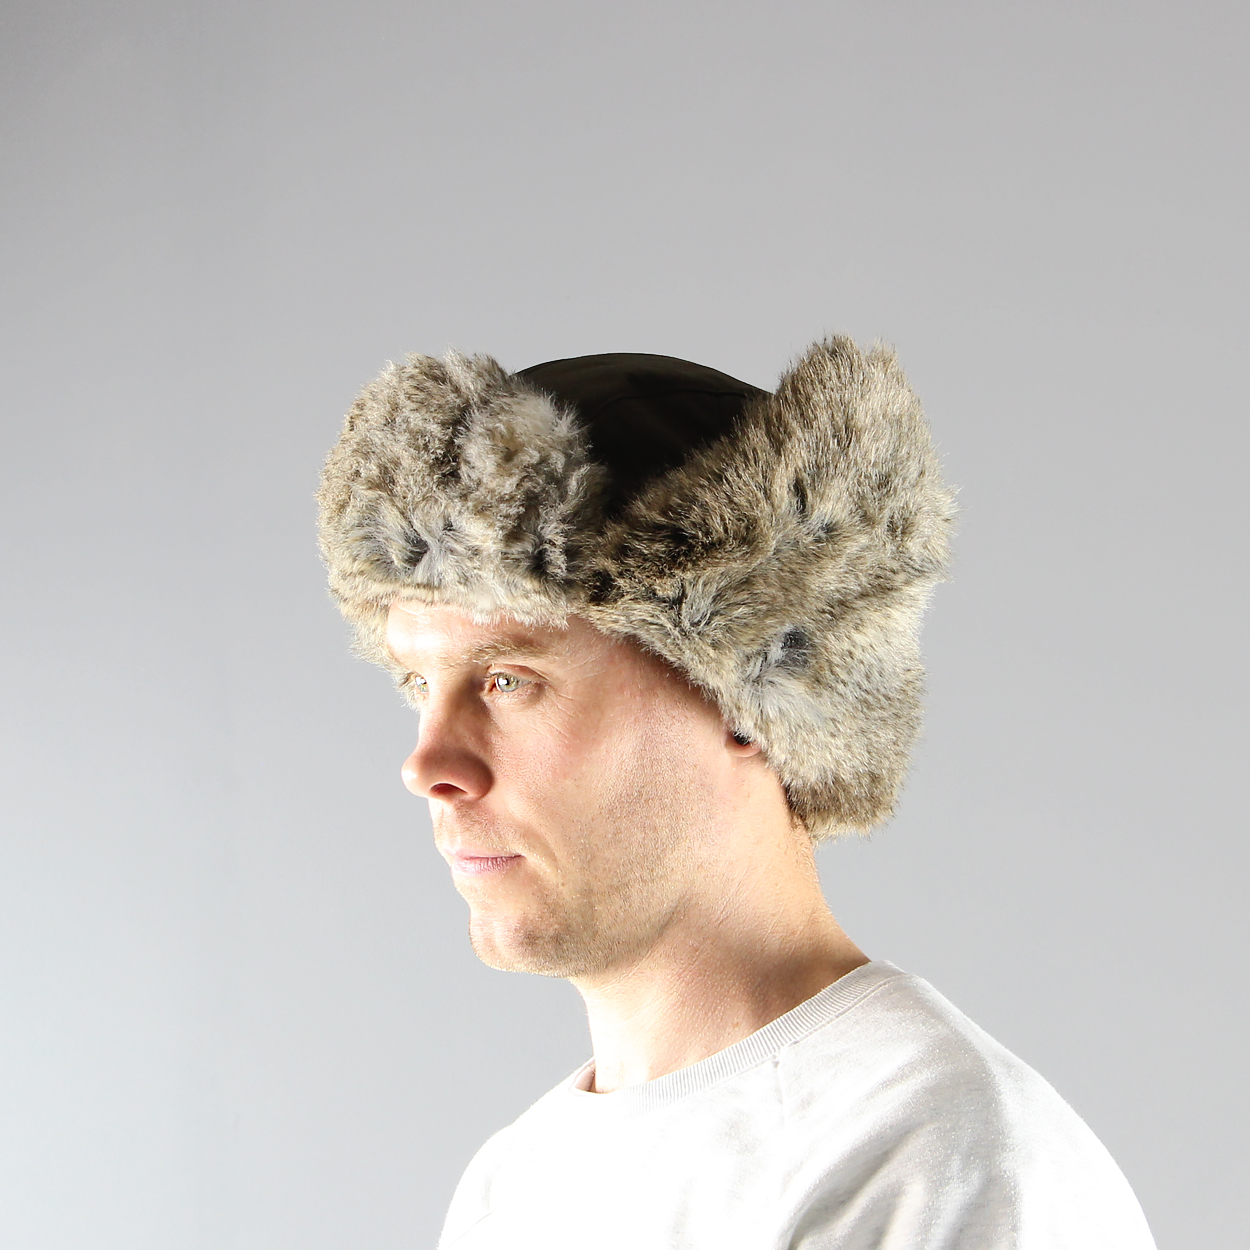 7111eb75 A traditional Nordic style hat made from G-1000 material with a warm  synthetic fur lining peak. Fjallraven's Singi Heater is made for cold  weather!